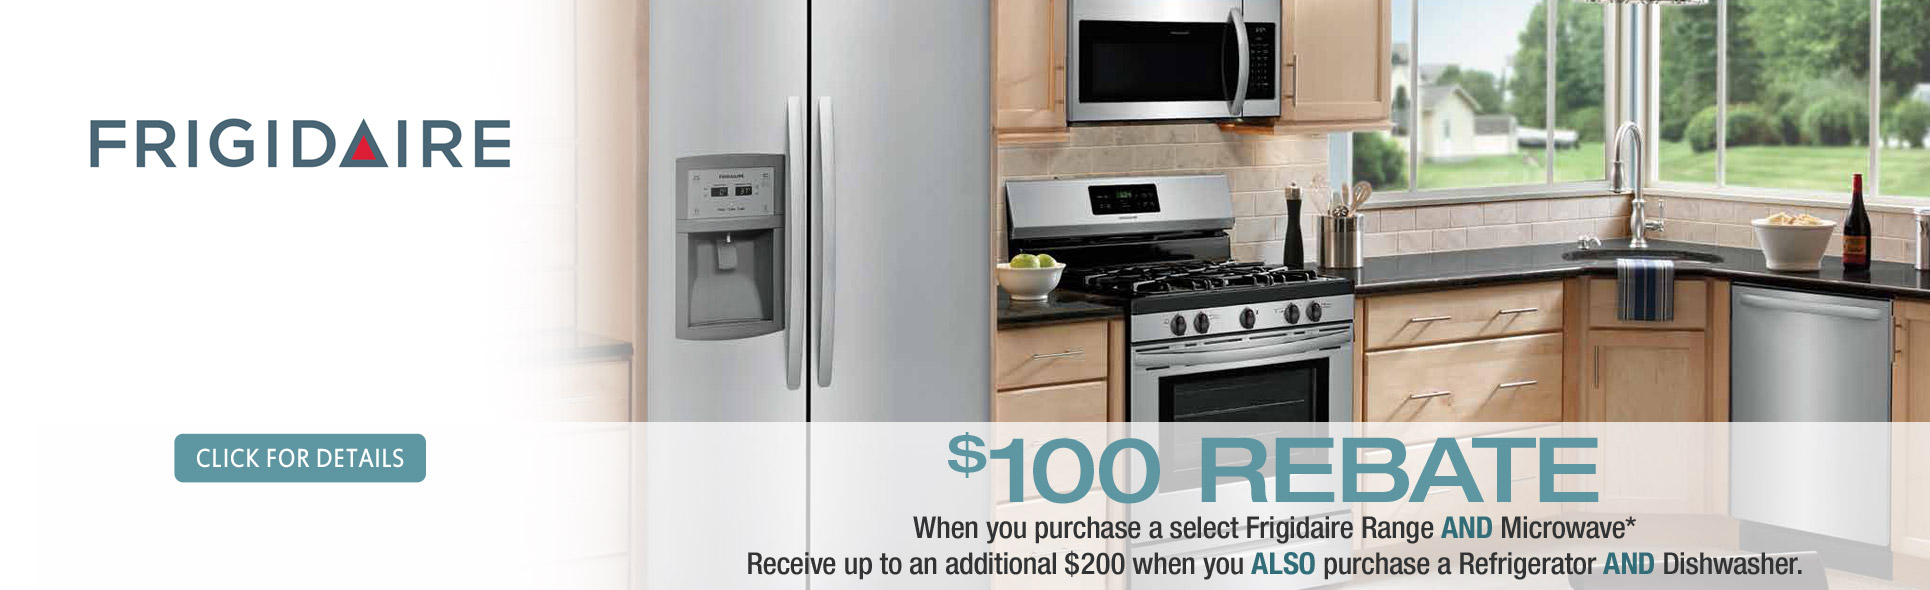 Save up to $200 with qualified Frigidaire Appliance purchase